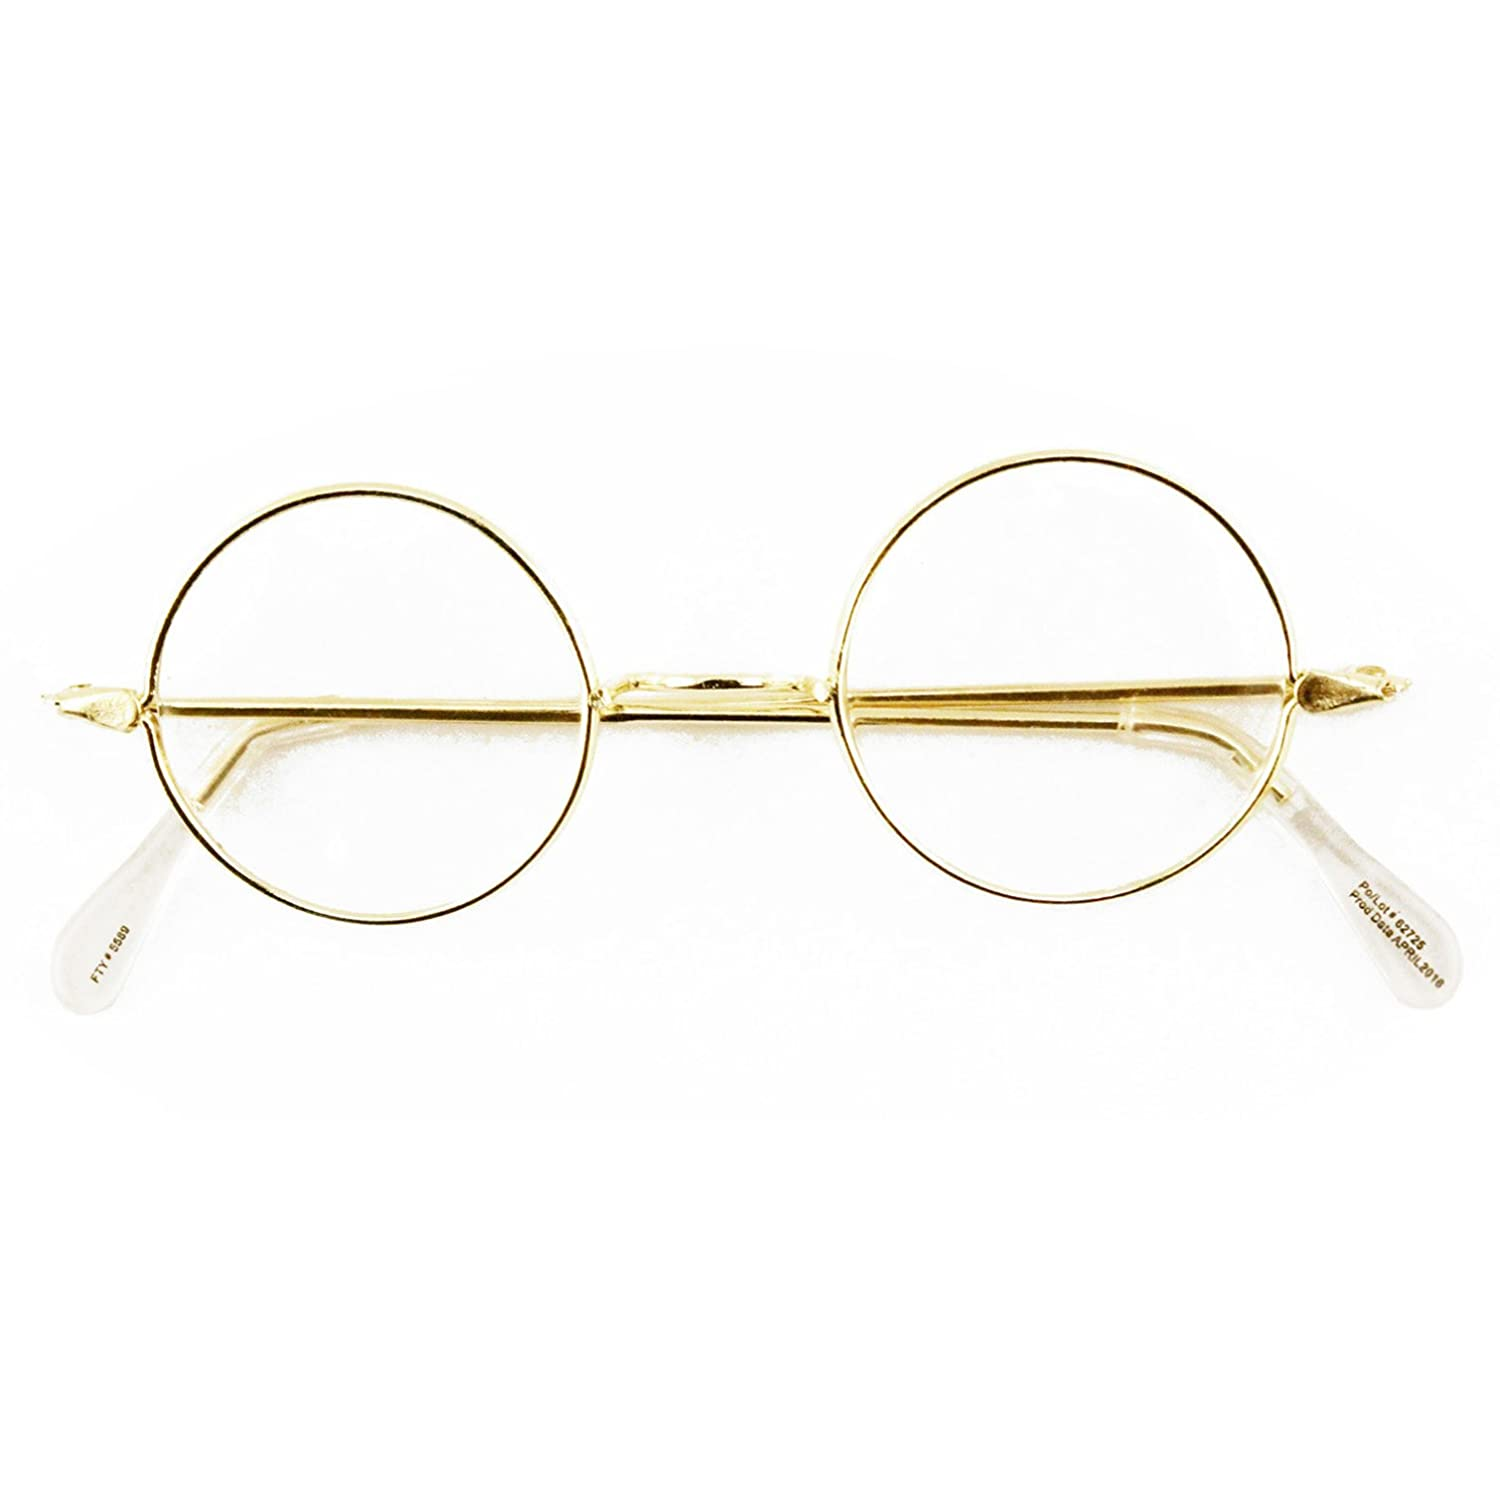 6ff6877e1ae8b Includes one pair of round wire rim costume accessory glasses. These round  glasses make a great accessory to any Santa Claus suit or Mrs. Claus costume .